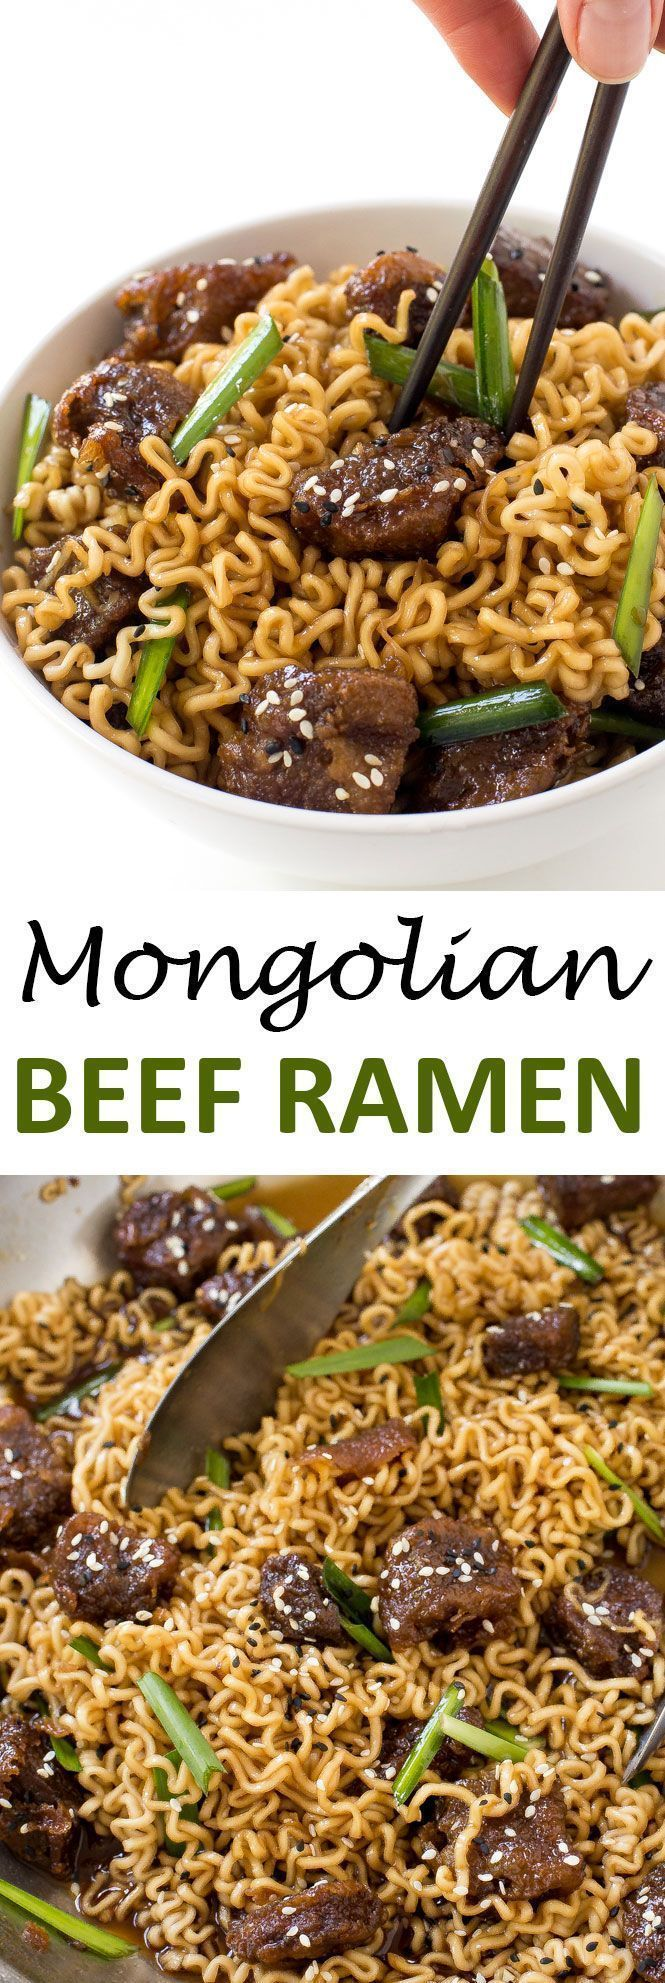 Mongolian Beef Ramen. Just like PF Changs Mongolian Beef but with Ramen Noodles… Will need to substitute soy sauce with coconut aminos and find a replacement for the brown sugar.